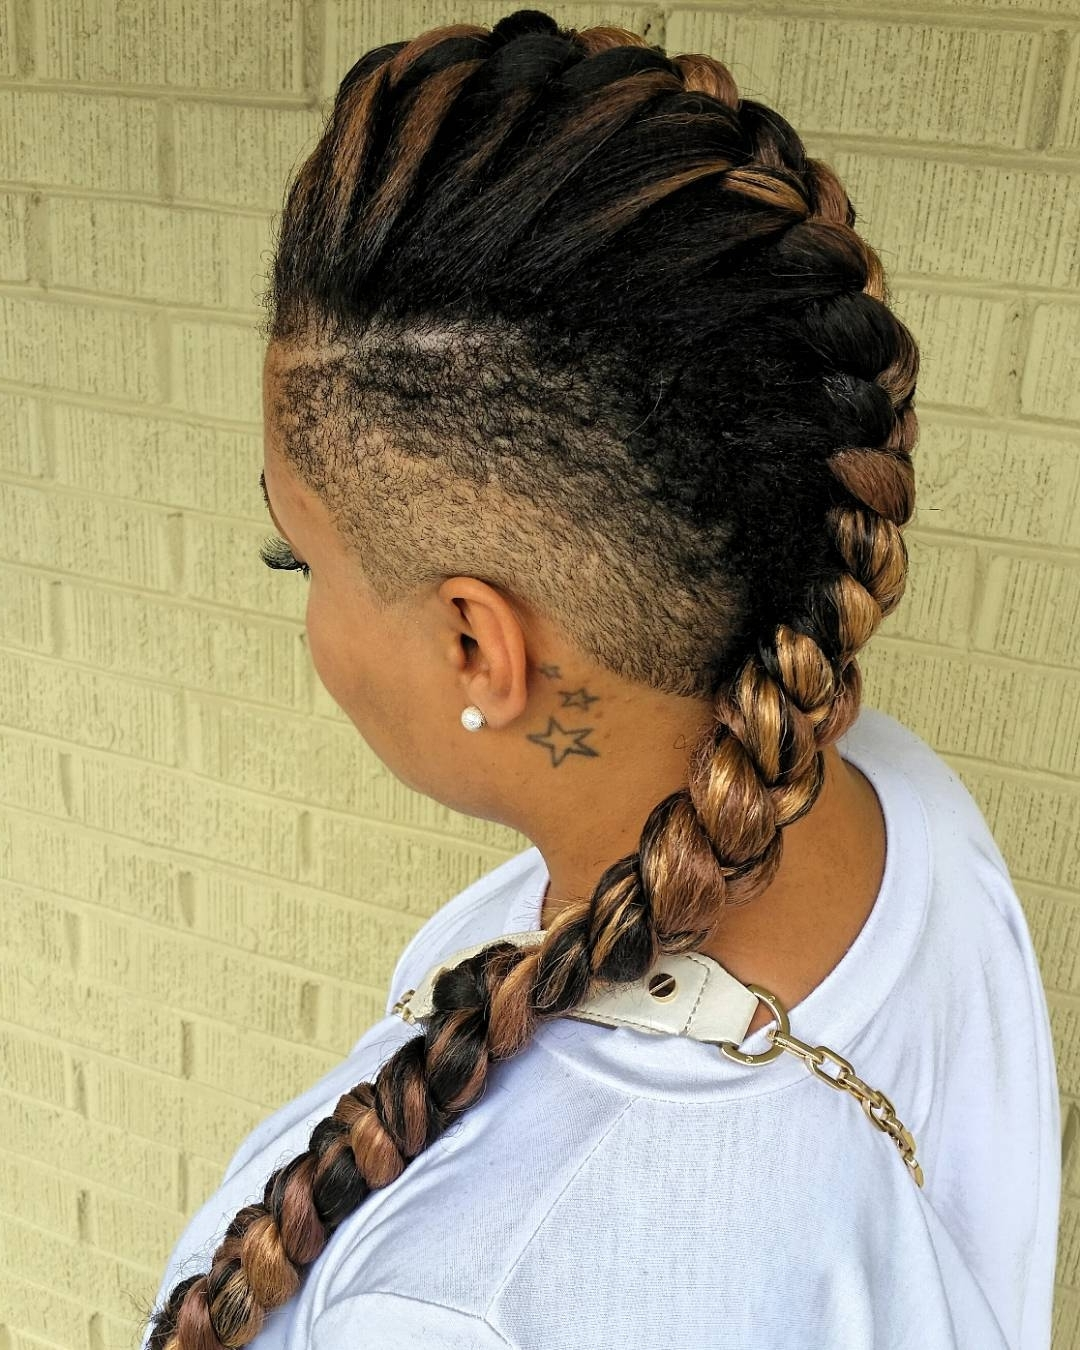 Mohawk Braids: 12 Braided Mohawk Hairstyles That Get Attention Intended For Most Current Mohawk Braided Hairstyles (View 6 of 15)